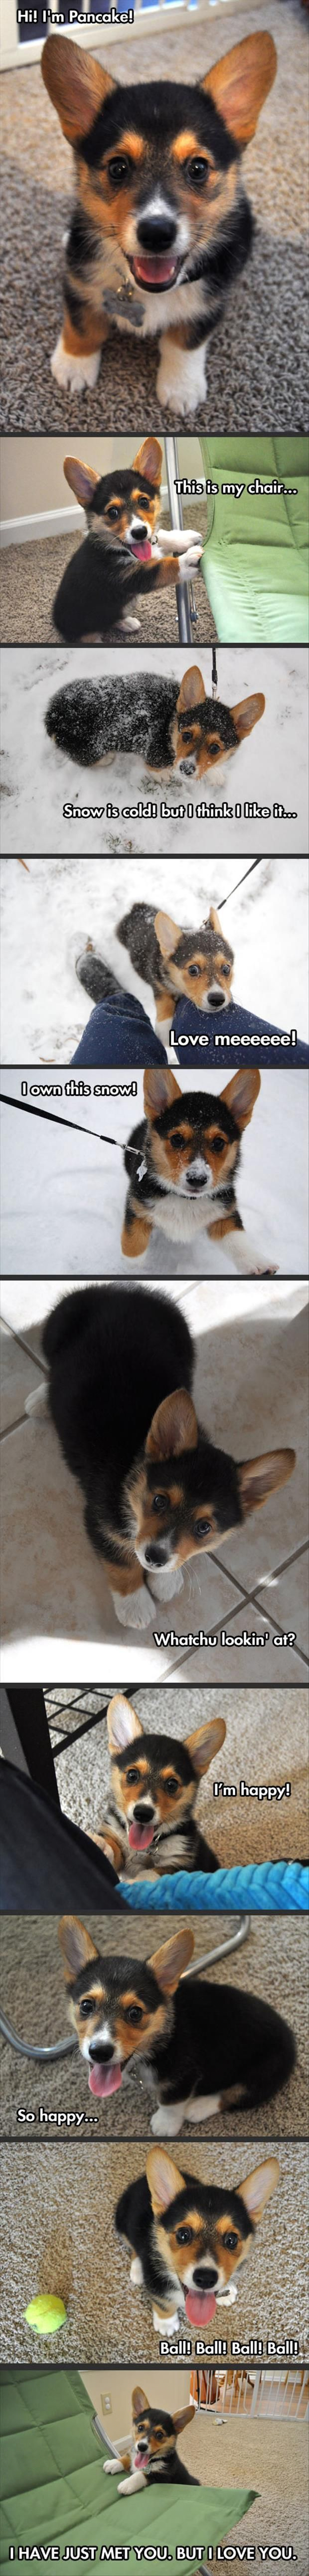 Awww: Corgis, Cuteness Overload, Happiest Dog, Dogs, Funny Pictures, Puppy, Animal, Pancake